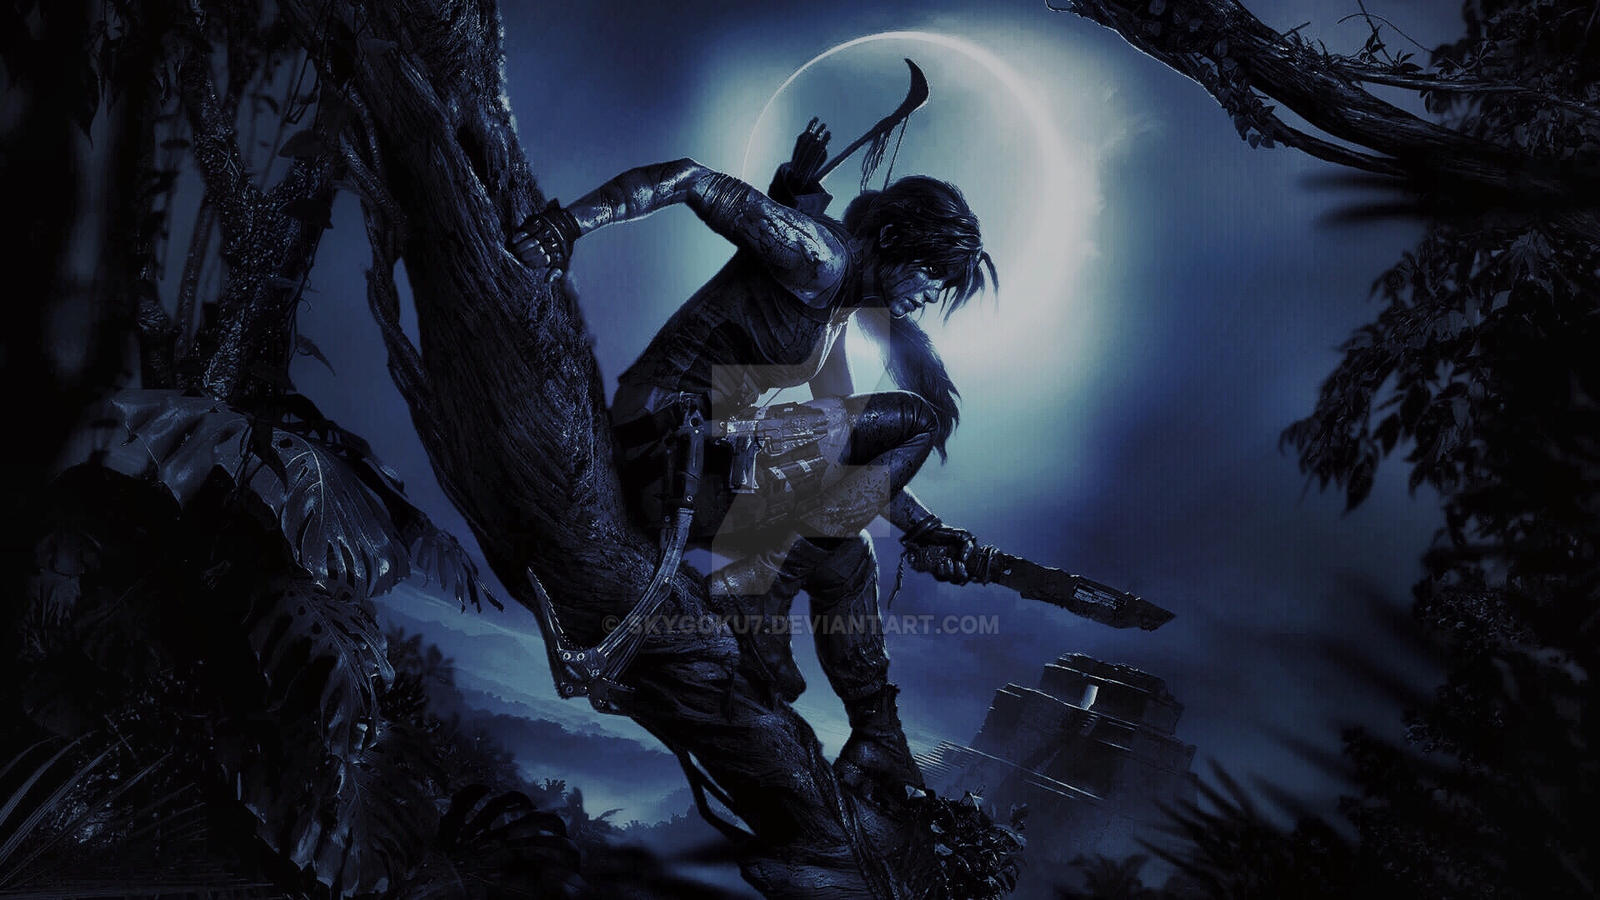 Shadow Of The Tomb Raider Wallpaper Edit By Skygoku7 On Deviantart